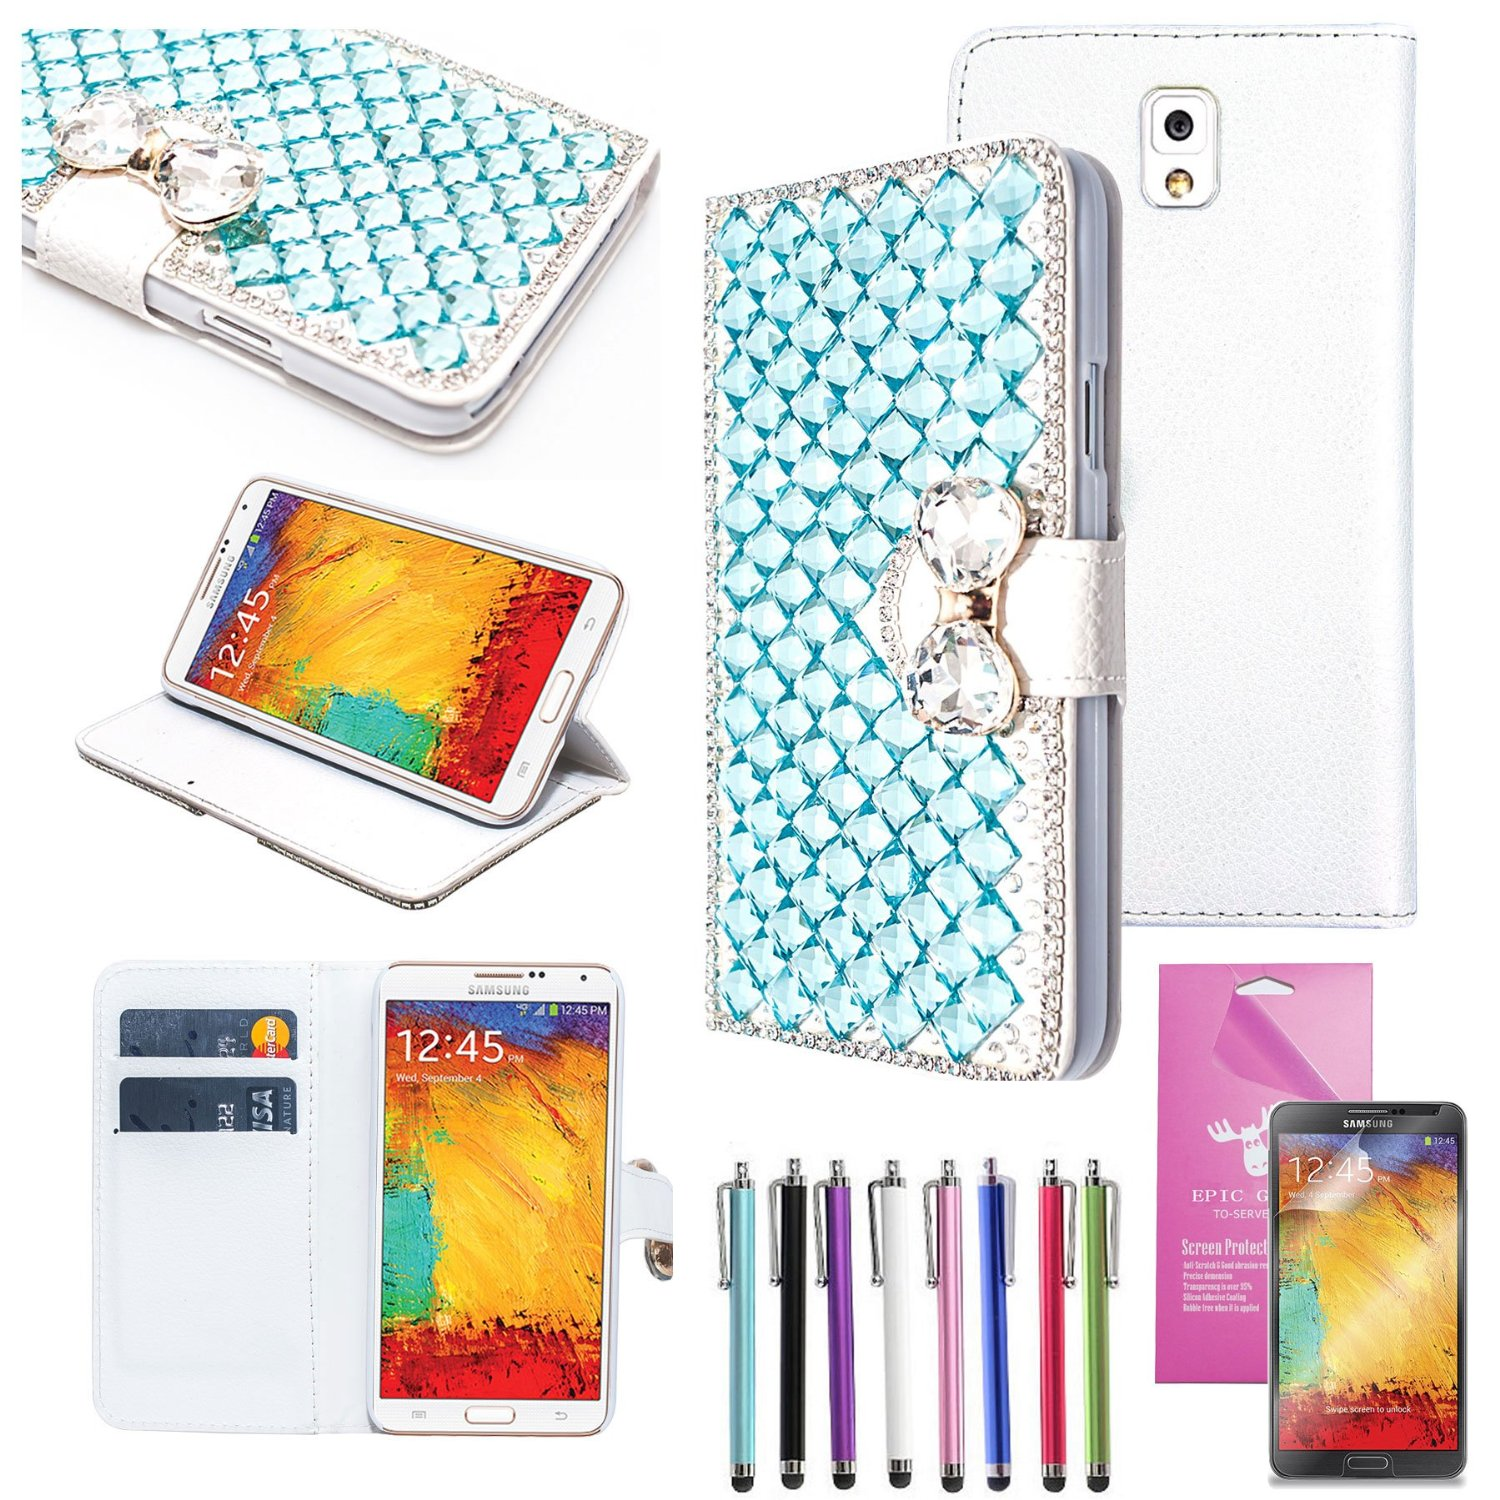 EpicGadget(TM) For Samsung Galaxy Note 3 Handmade Luxury Diamond Crystal Blue Bling Bling White PU Leather Case With Crystal Bow Knot Stand Purse Wallet Case Magnet Flip Cover With Credit Card Holder Pouch + Note 3 N9000 Screen Protector + 1 Stylus Pen (Random Color) (US Seller!!) (Crystal Blue)